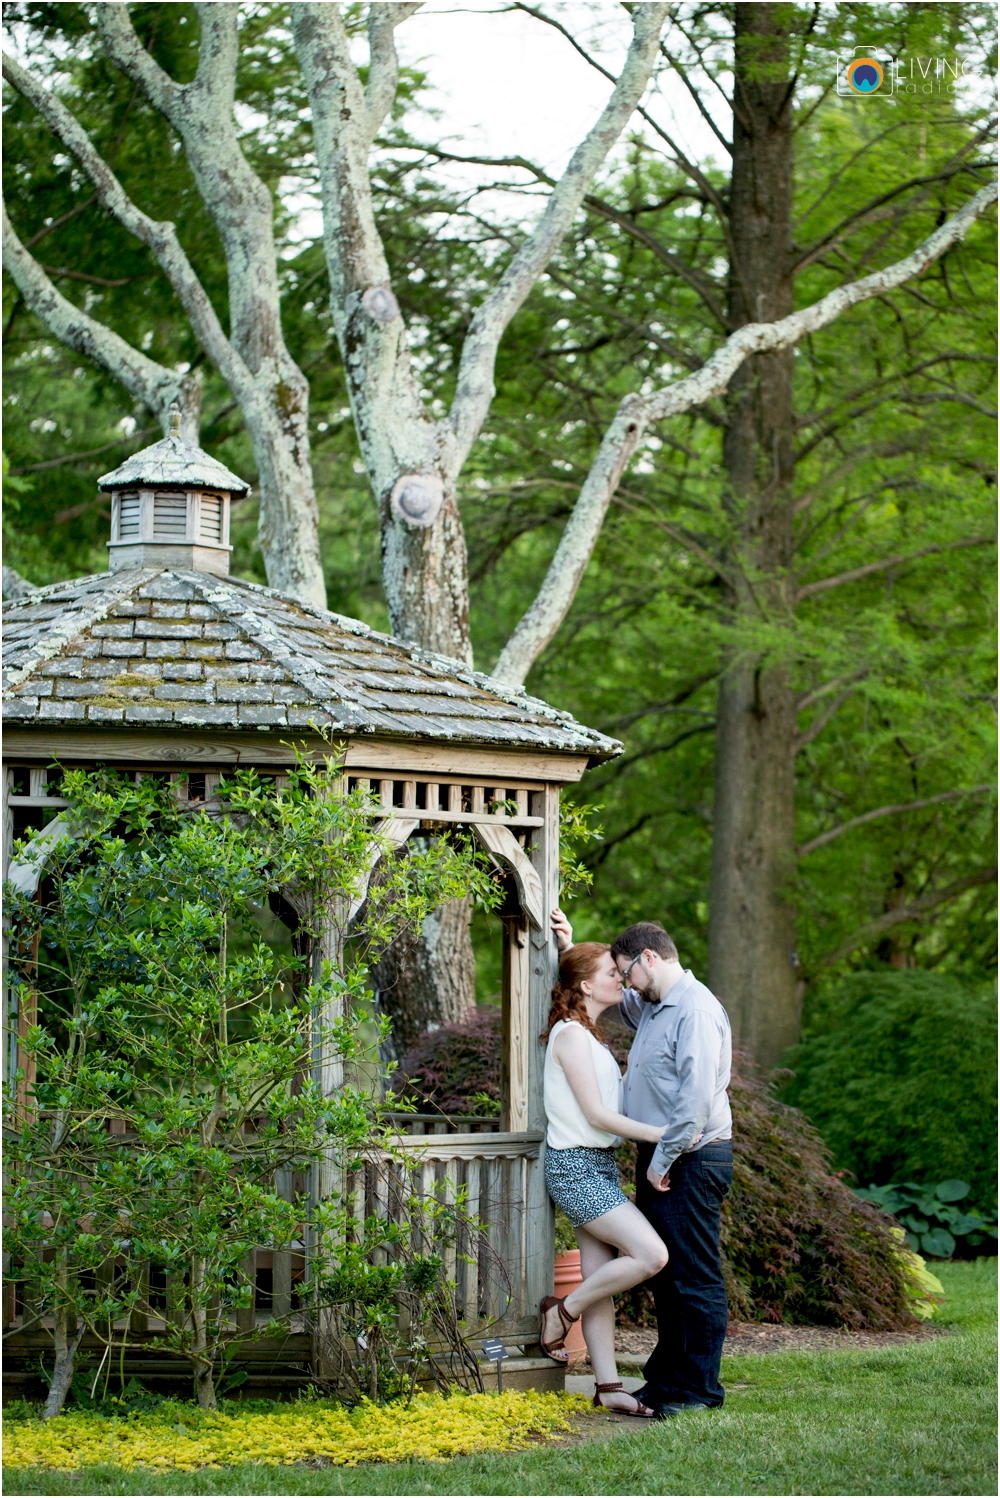 miriam-michael-engaged-clyburn-arboretum-engagement-session-baltimore-outdoor-flowers-living-radiant-photography-maggie-patrick-nolan_0045.jpg